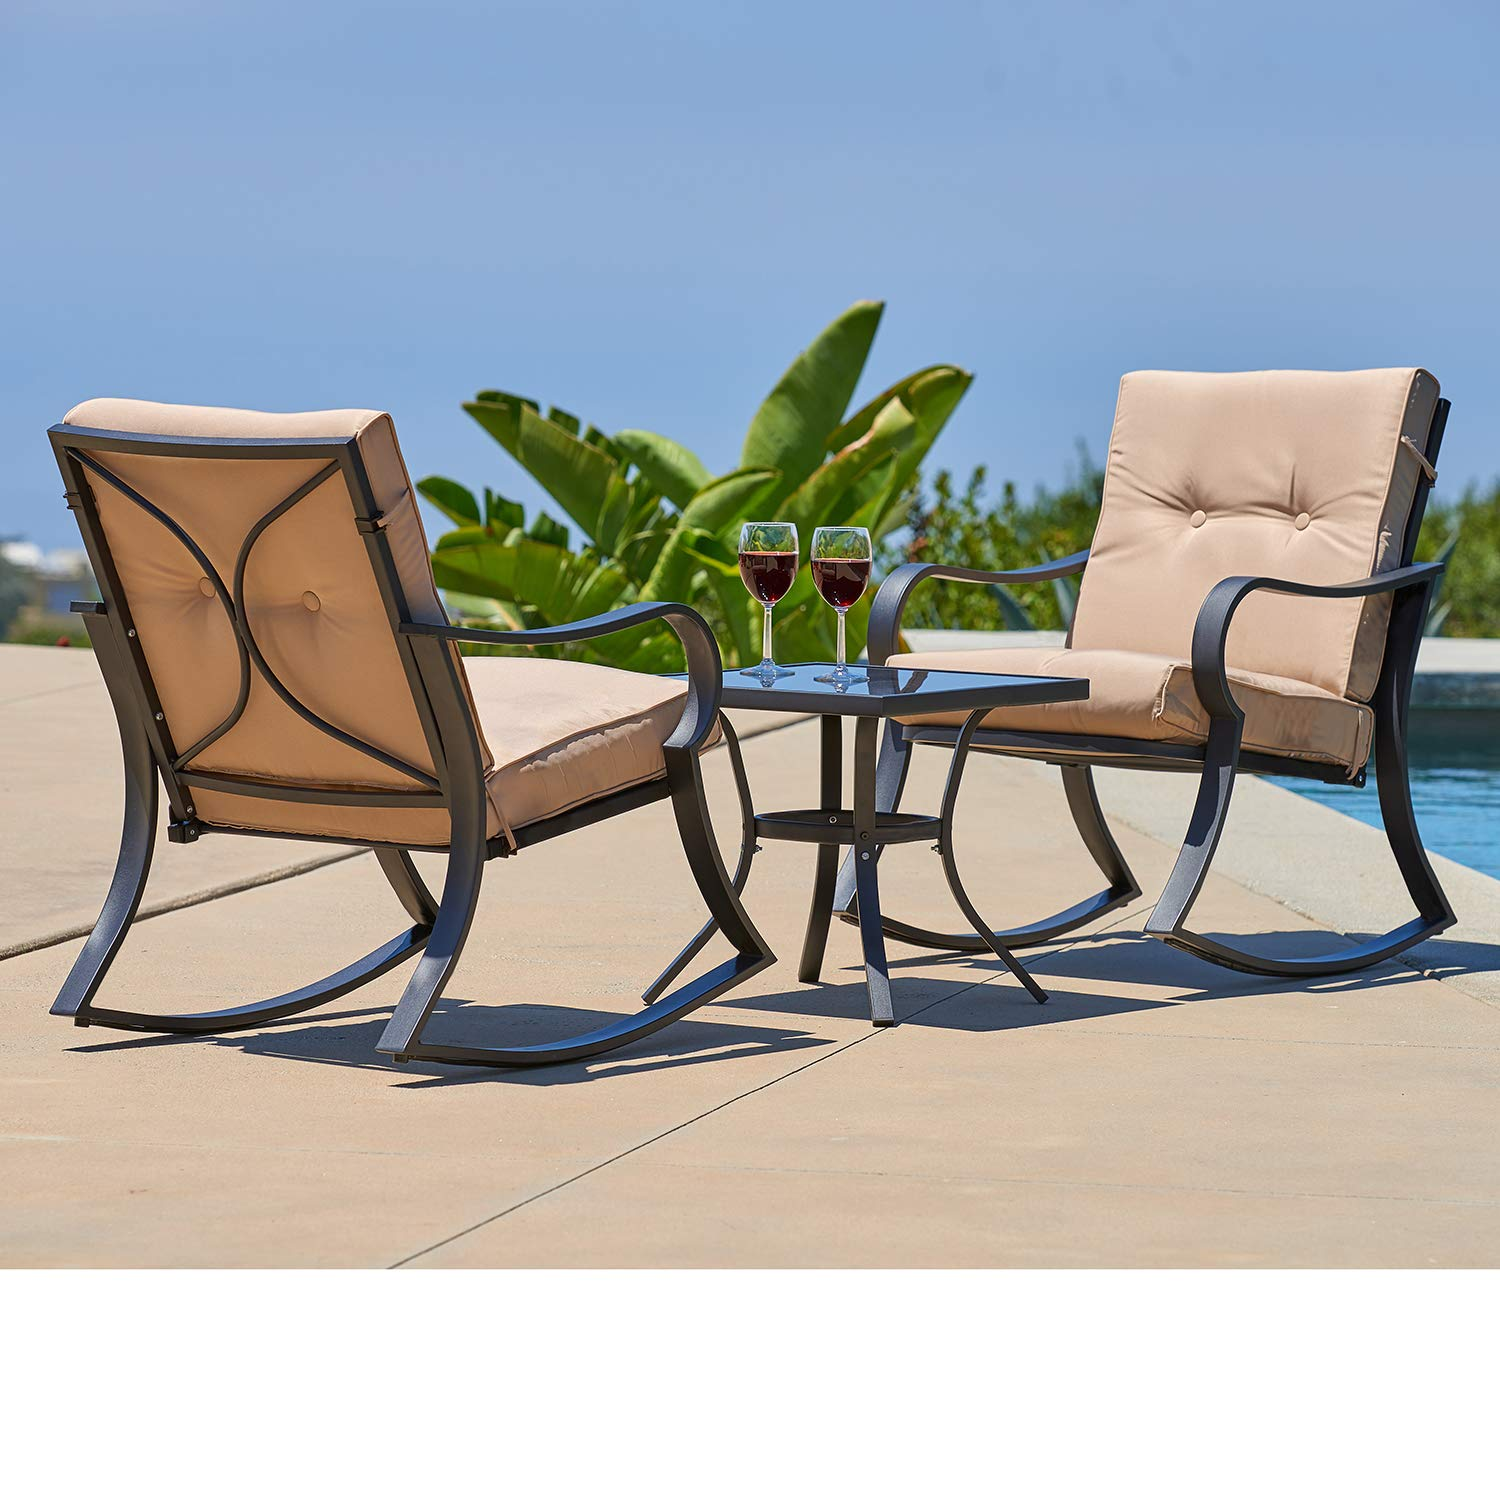 Oakmont Outdoor Furniture 3 Piece Bistro Set Rocking Chairs and Glass Top Table, Thick Cushions, Black Steel